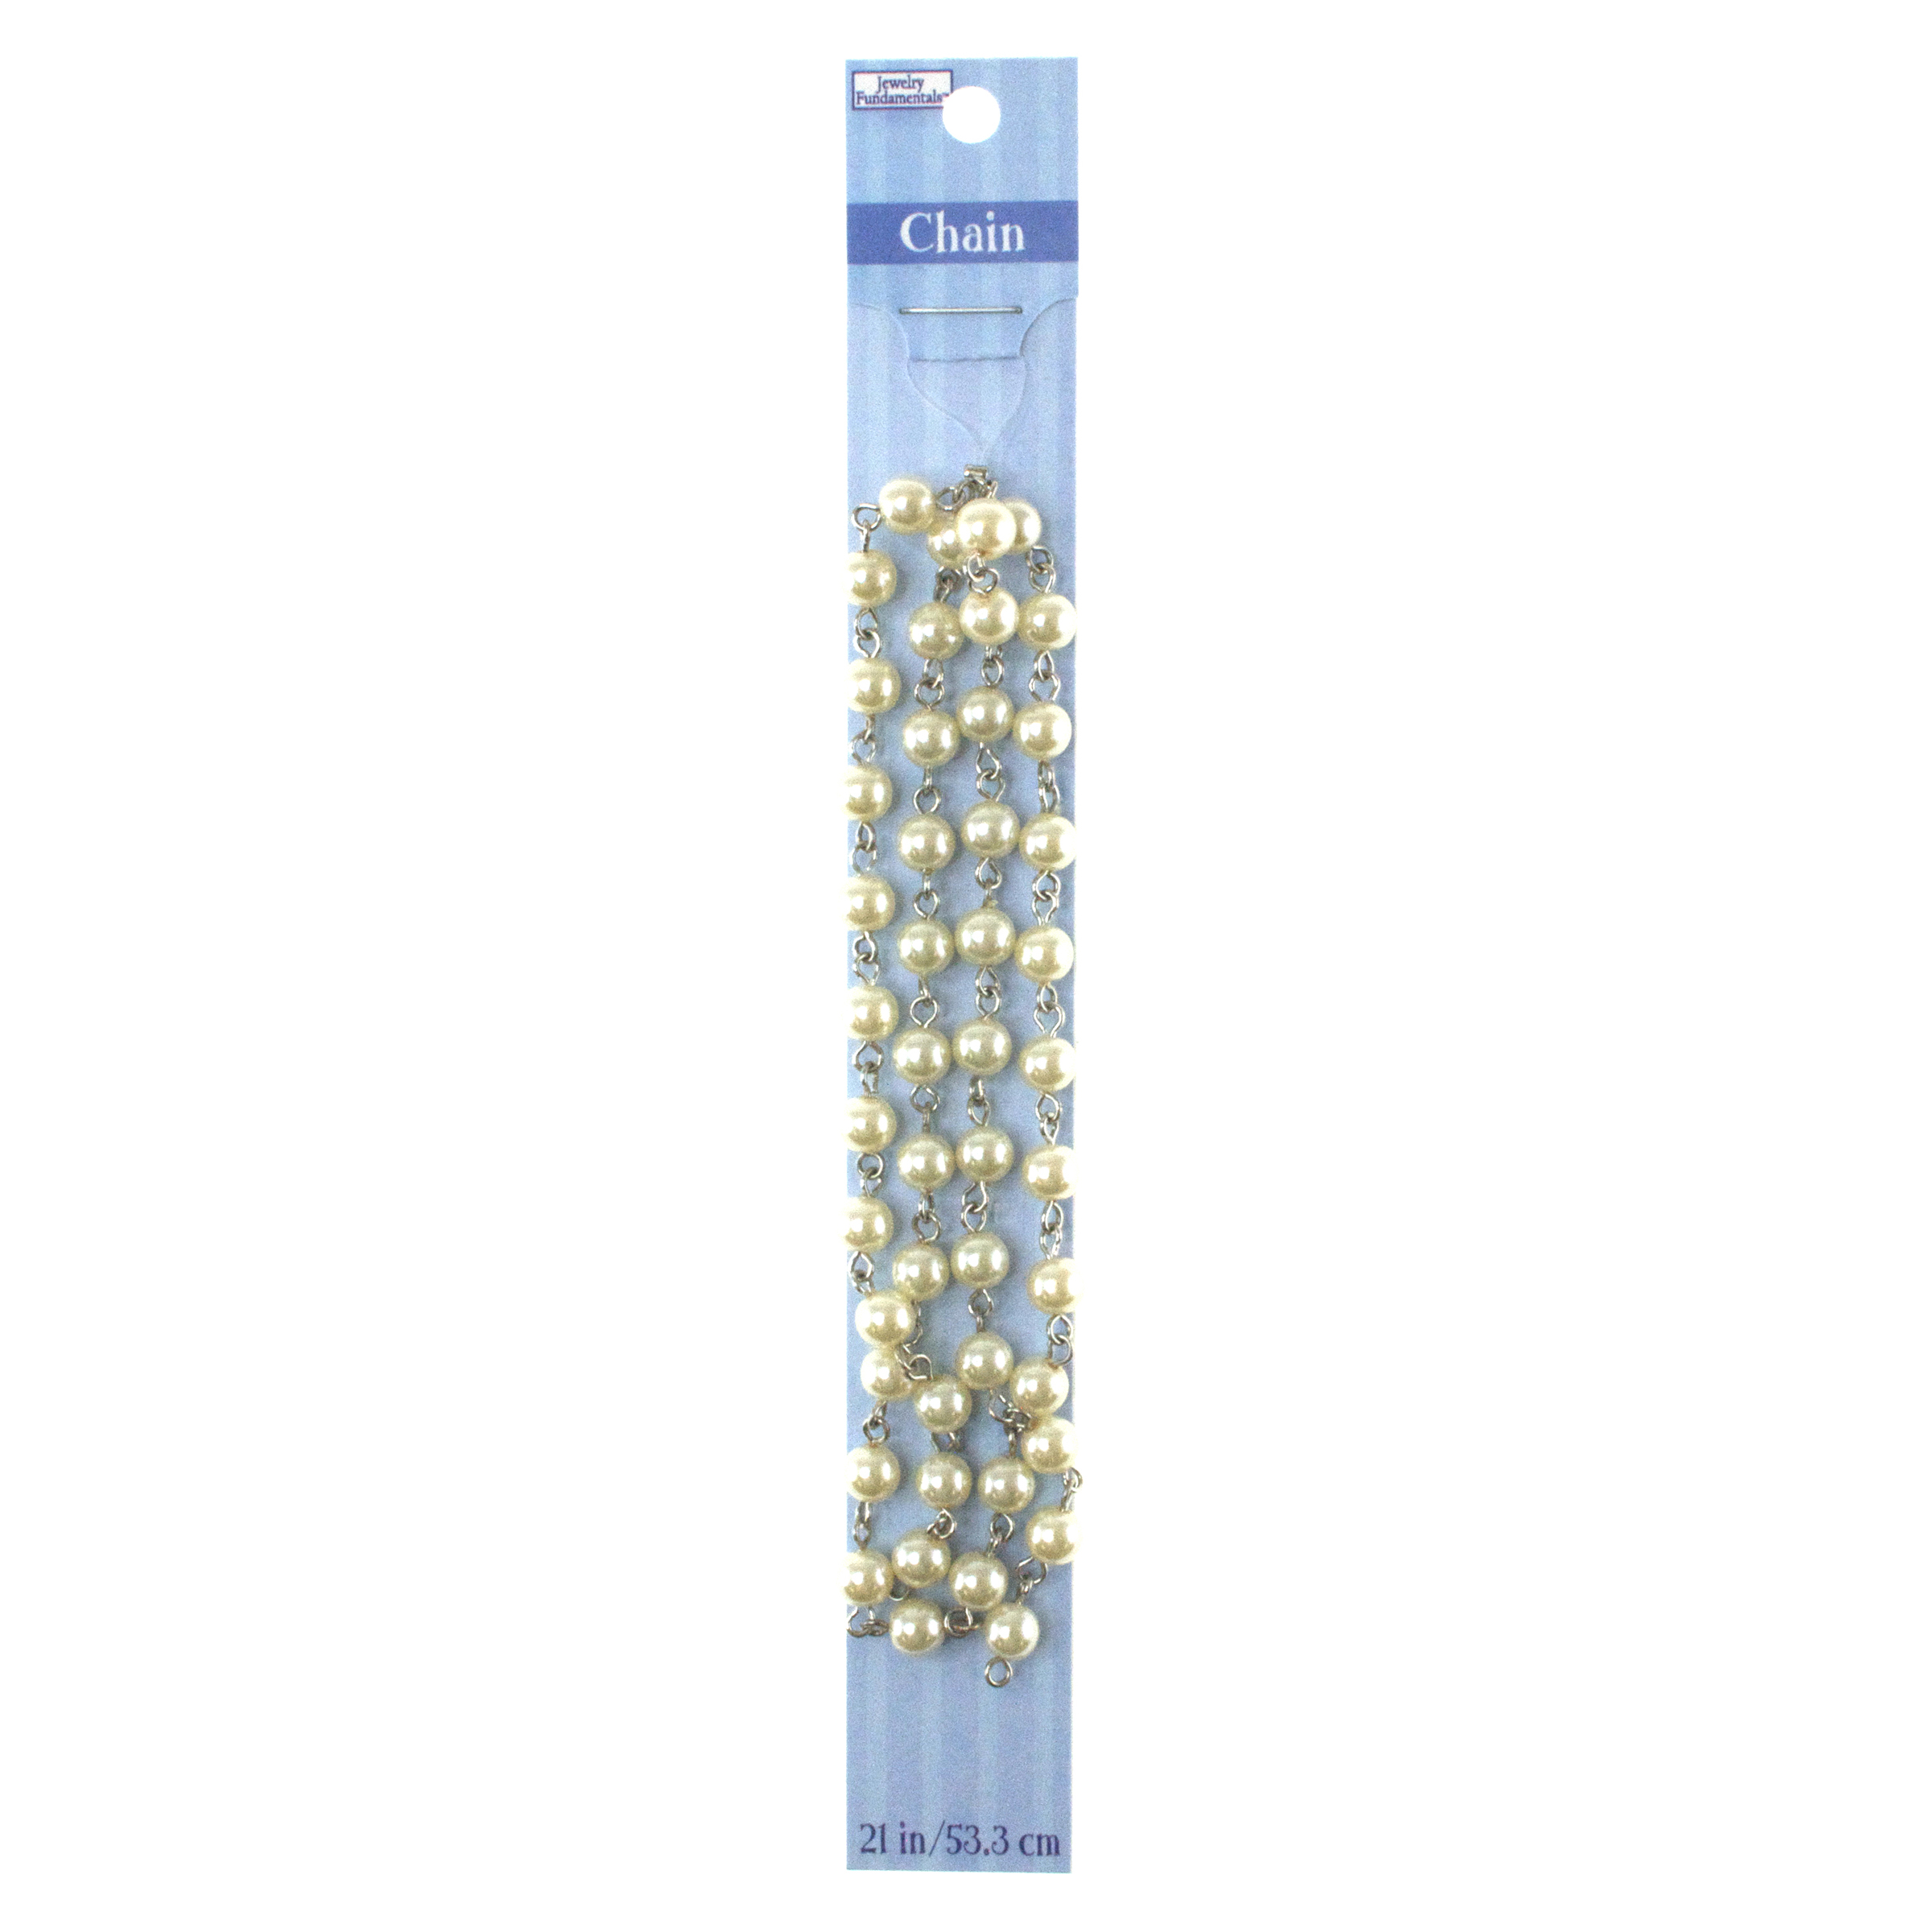 Jewelry Fundamentals 21 in. Chain-Pearly Off-White Links